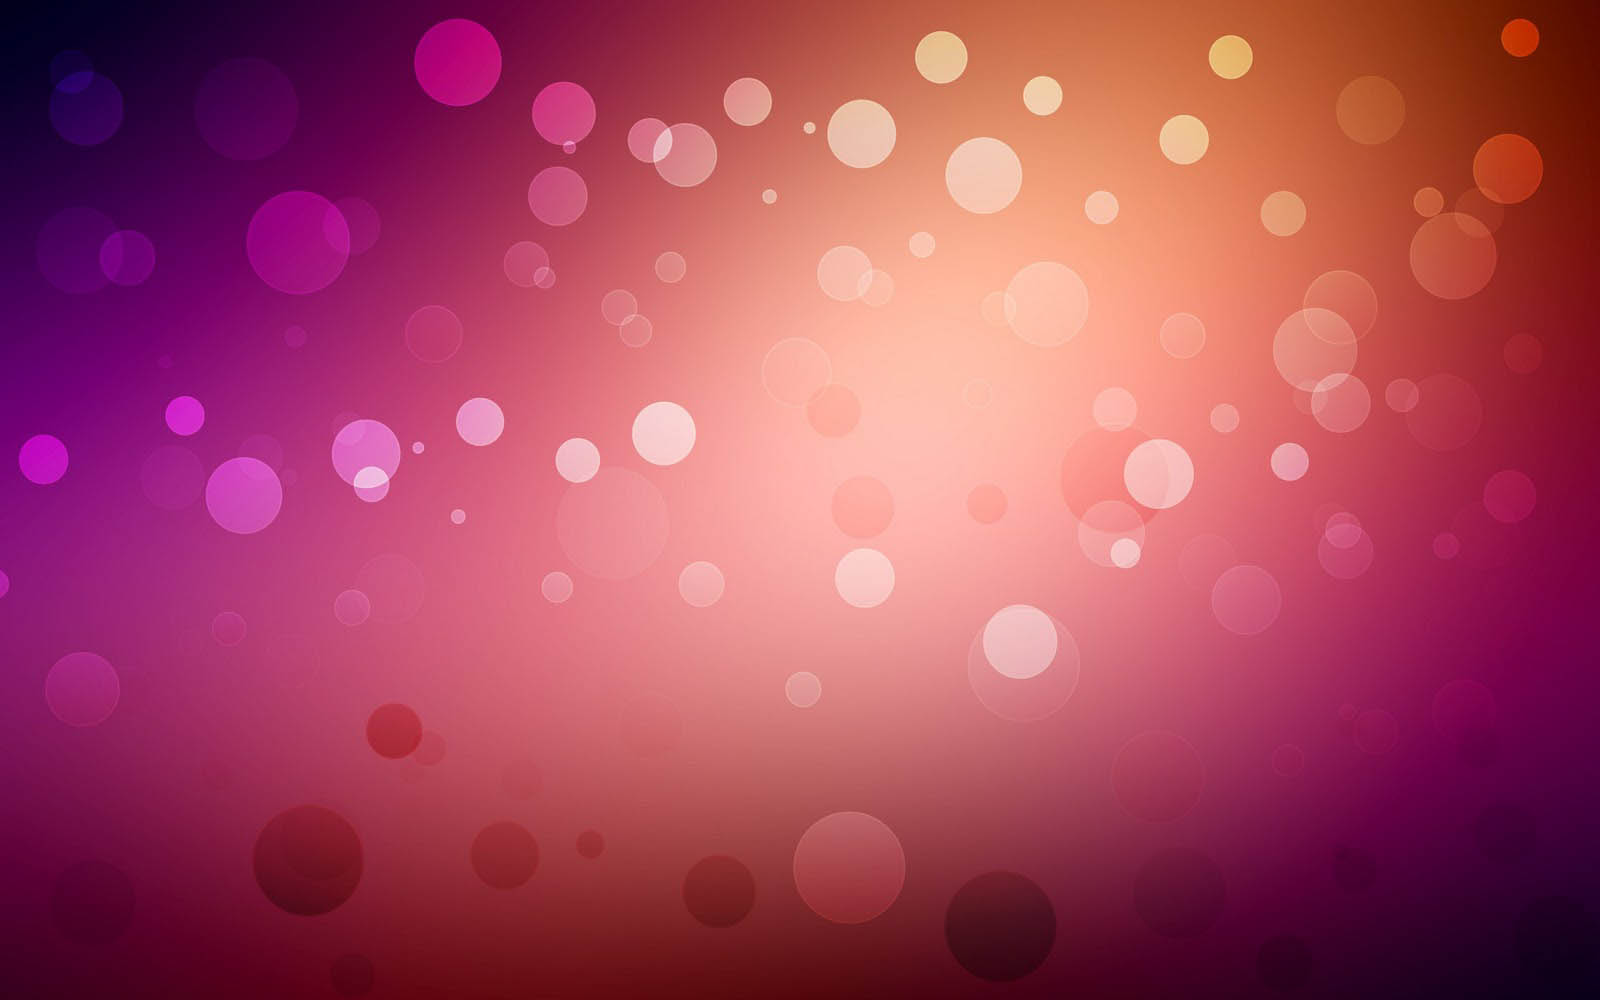 awesome abstract wallpapers pink - photo #34